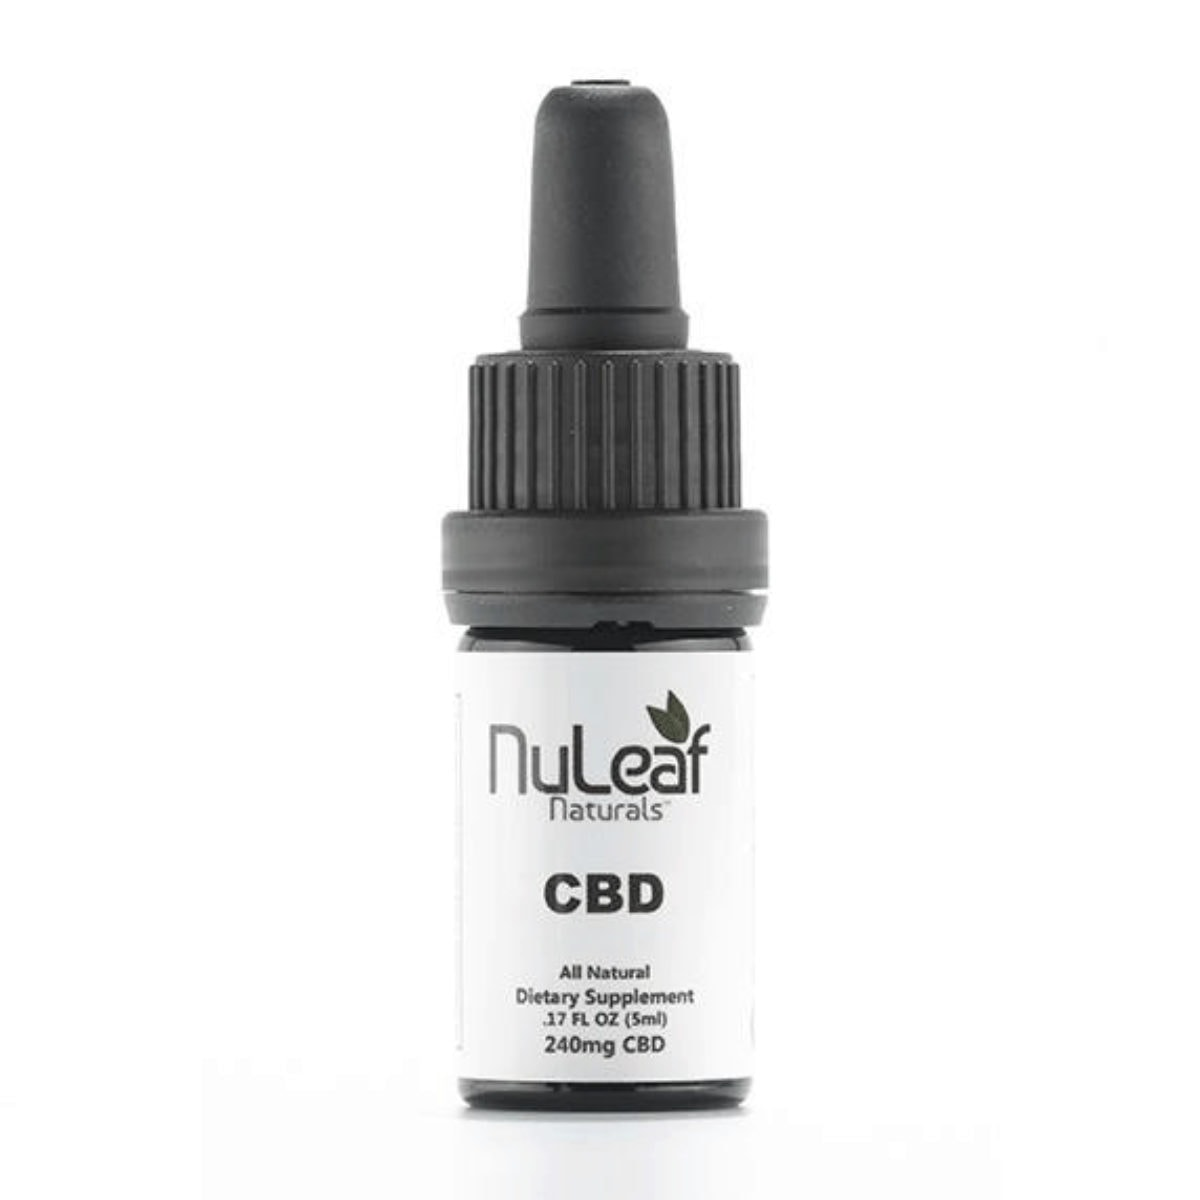 NuLeaf Naturals, CBD Oil, Full Spectrum, 5ml, 240mg of CBD